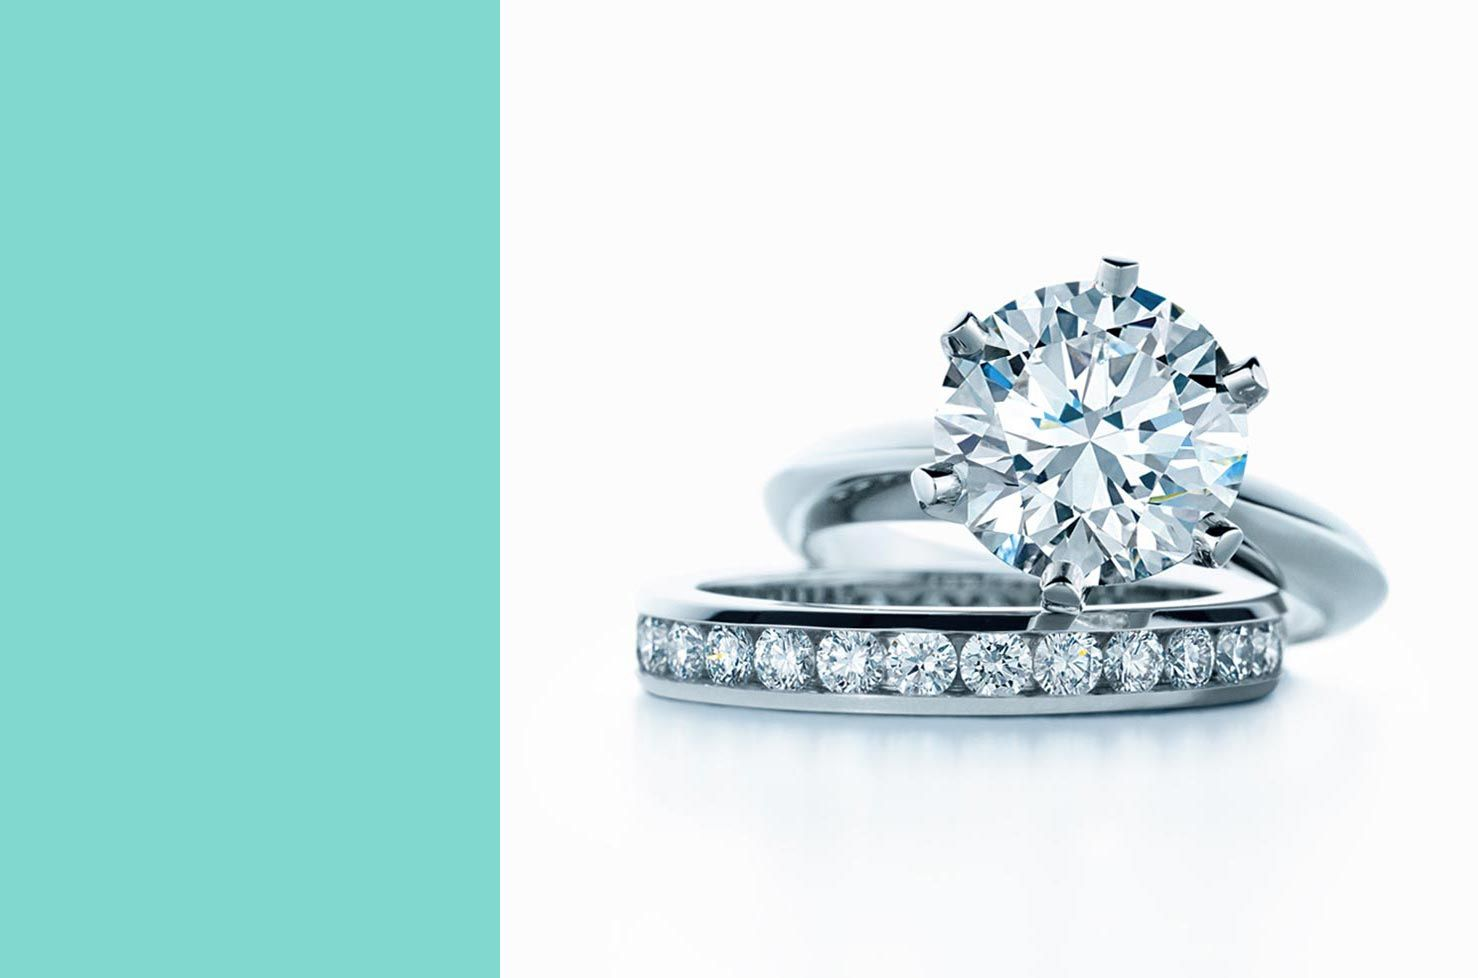 tiffany engagement rings and wedding bands jewellery en tiffany wedding bands 10 images about diamond rings on pinterest